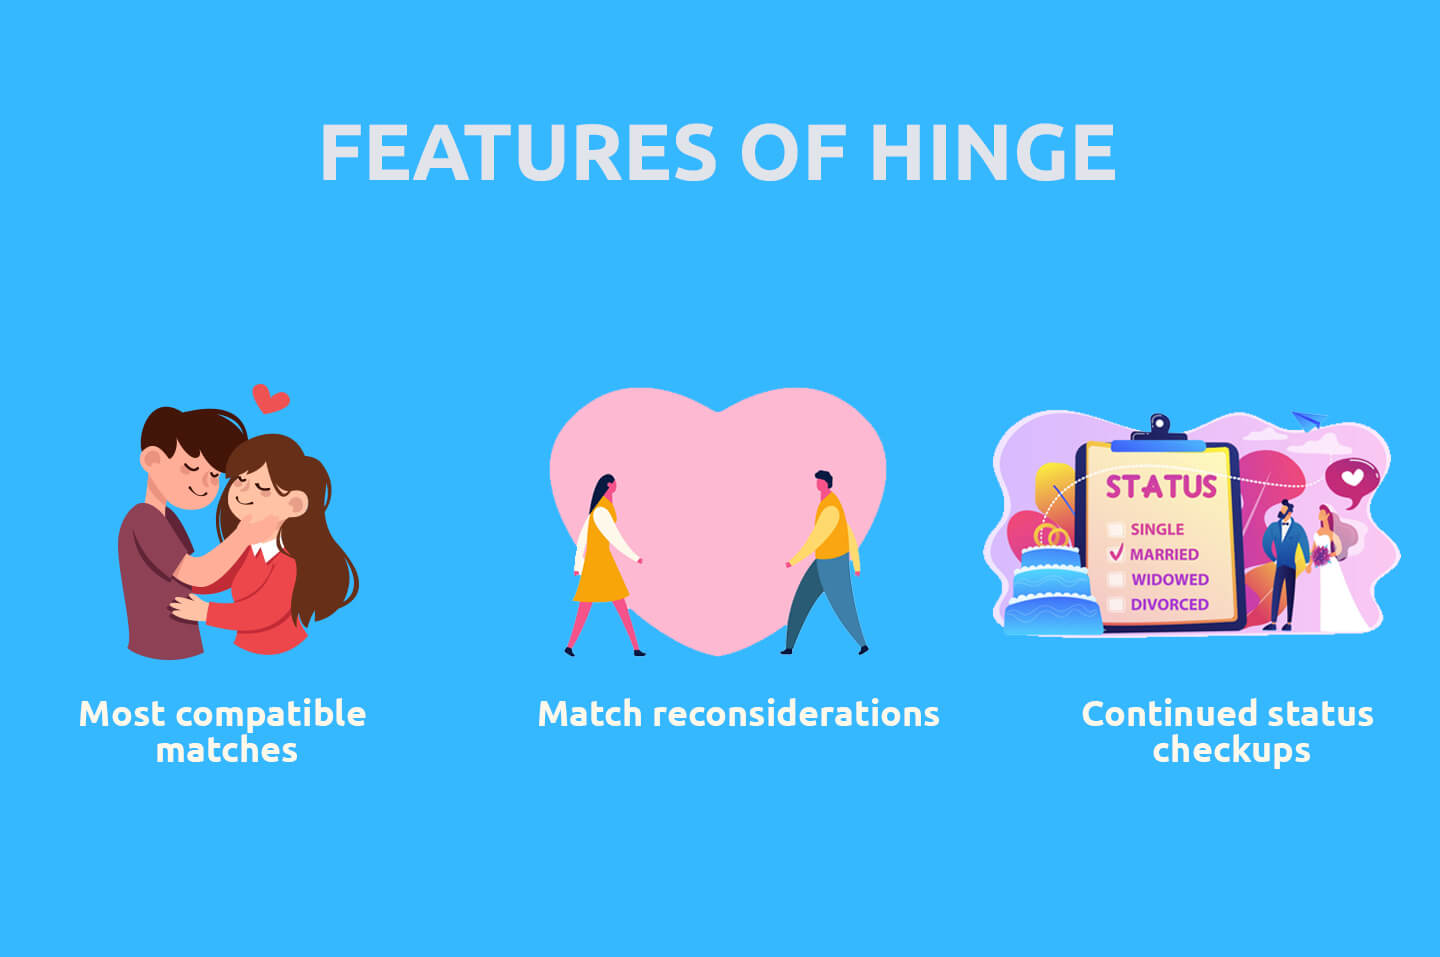 Features of hinge